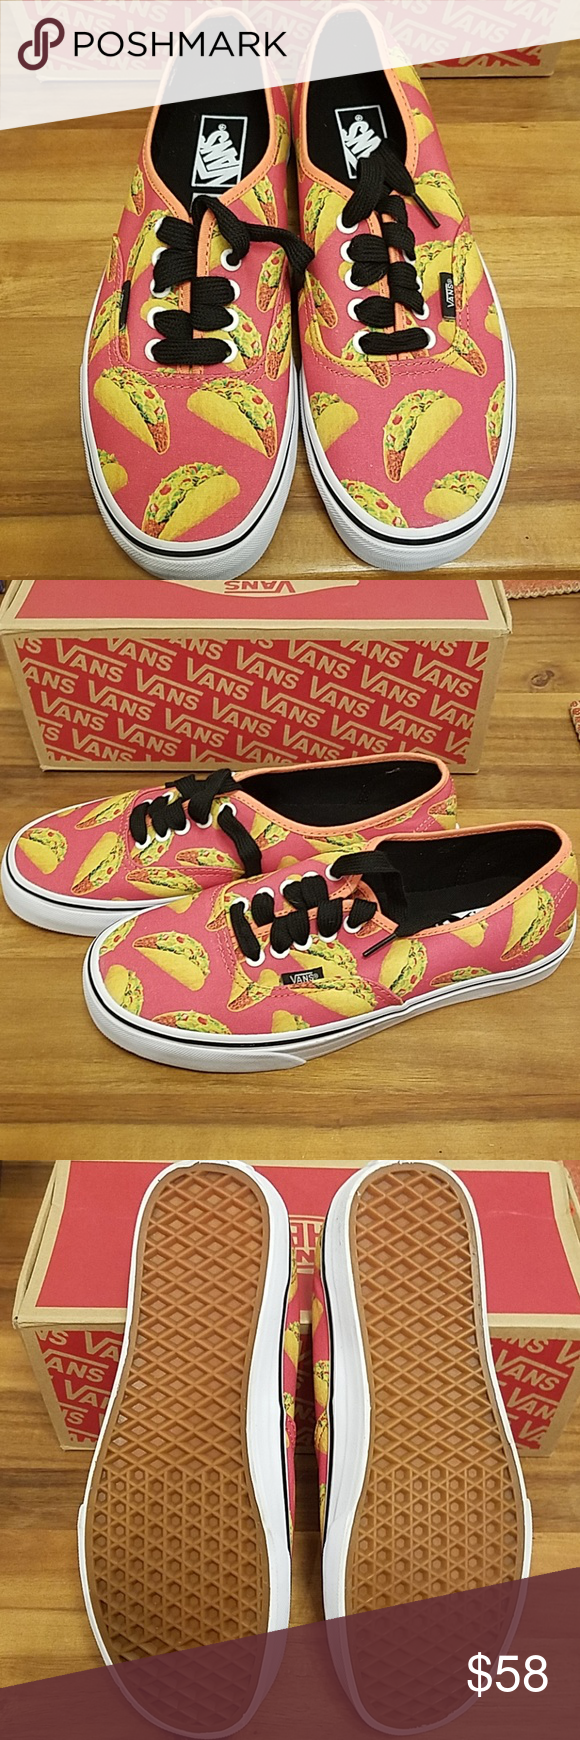 79f8844030ae Vans authentic taco sneakers New Authentic Vans coral taco sneakers mens  size 8 womens size 9.5 Vans Shoes Sneakers